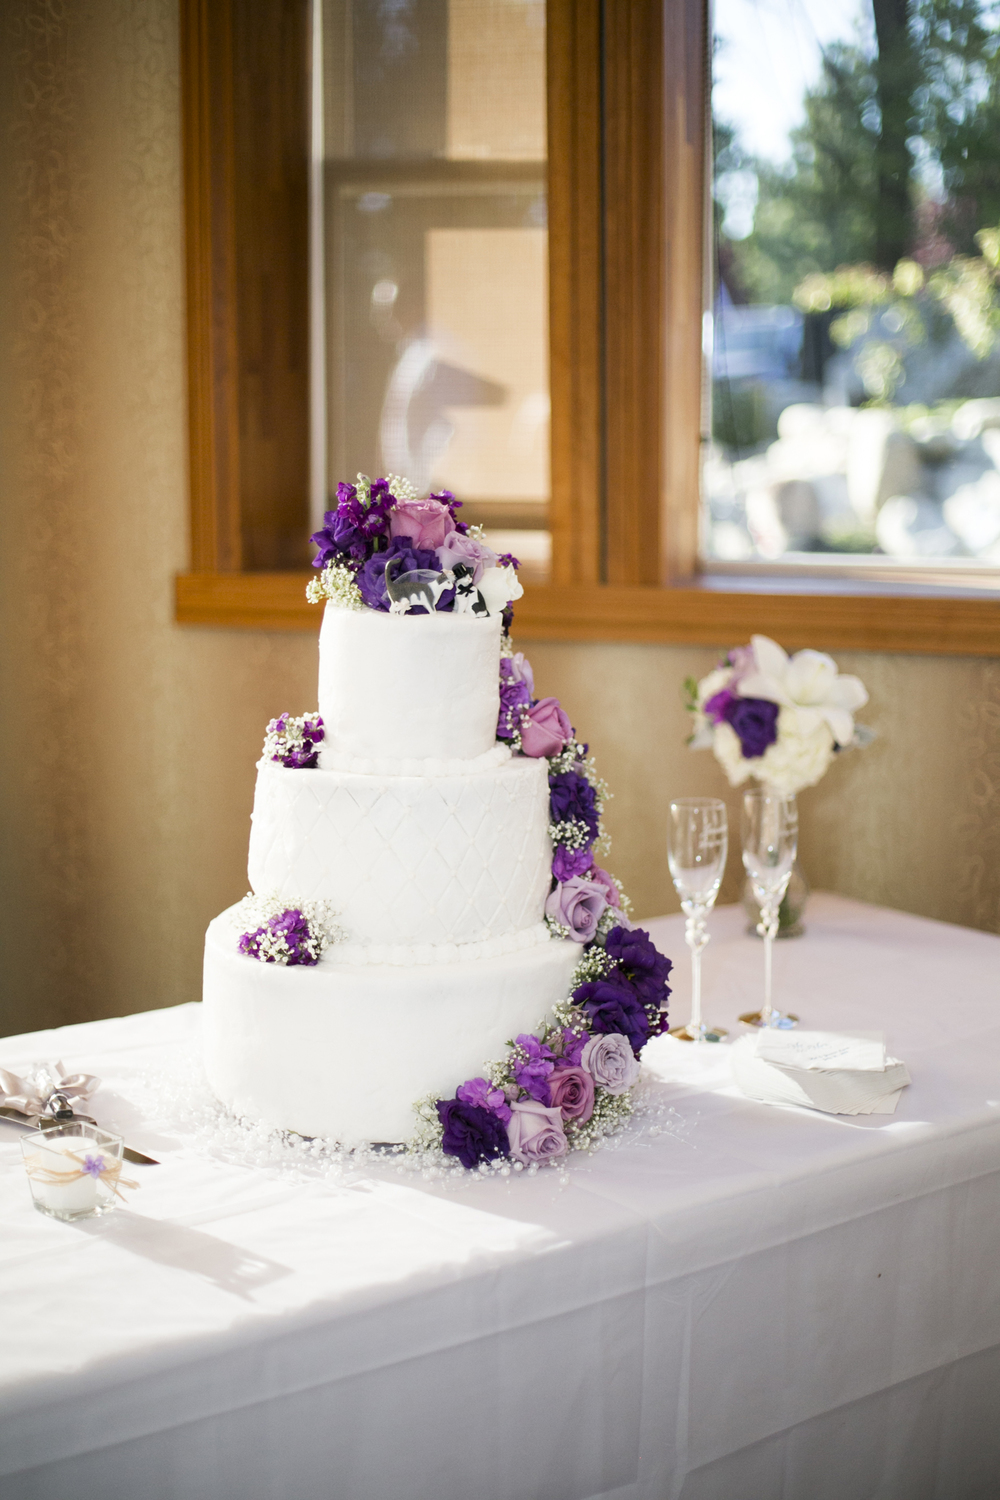 Jaeda-Reed-Wedding-JK-Cake.jpg